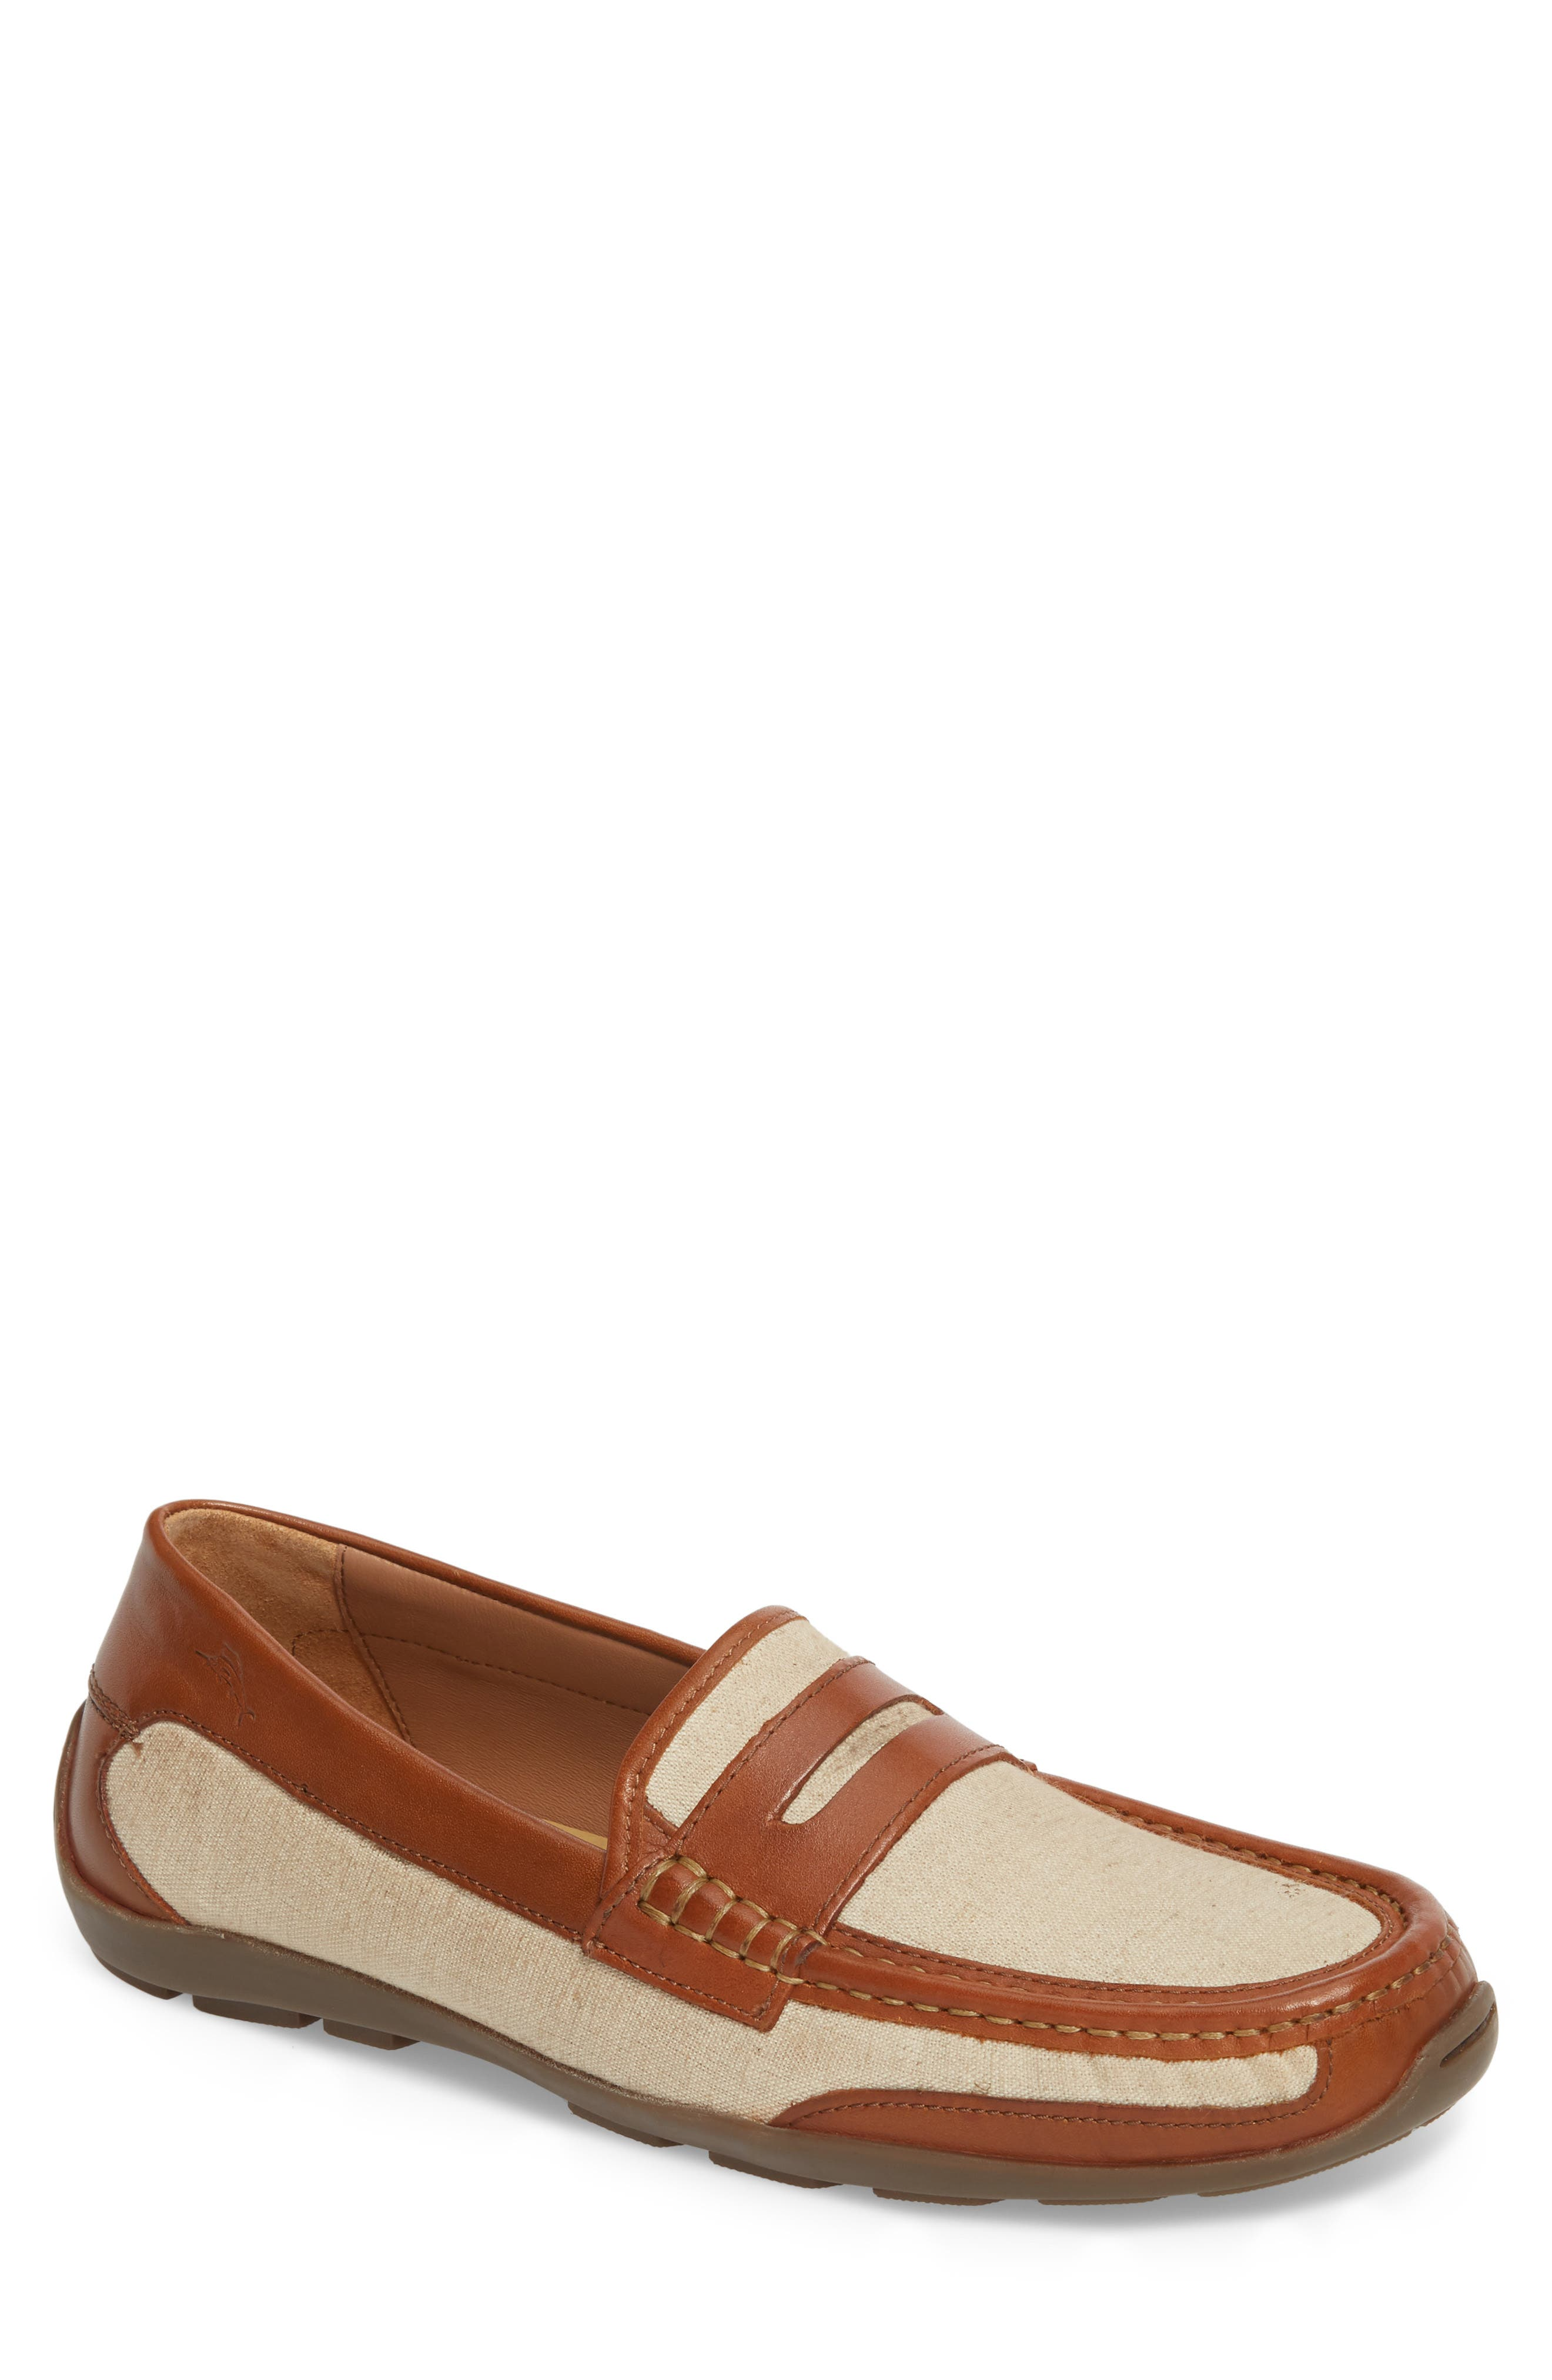 Taza Fronds Driving Shoe,                         Main,                         color, BROWN/ NATURAL LEATHER/ LINEN